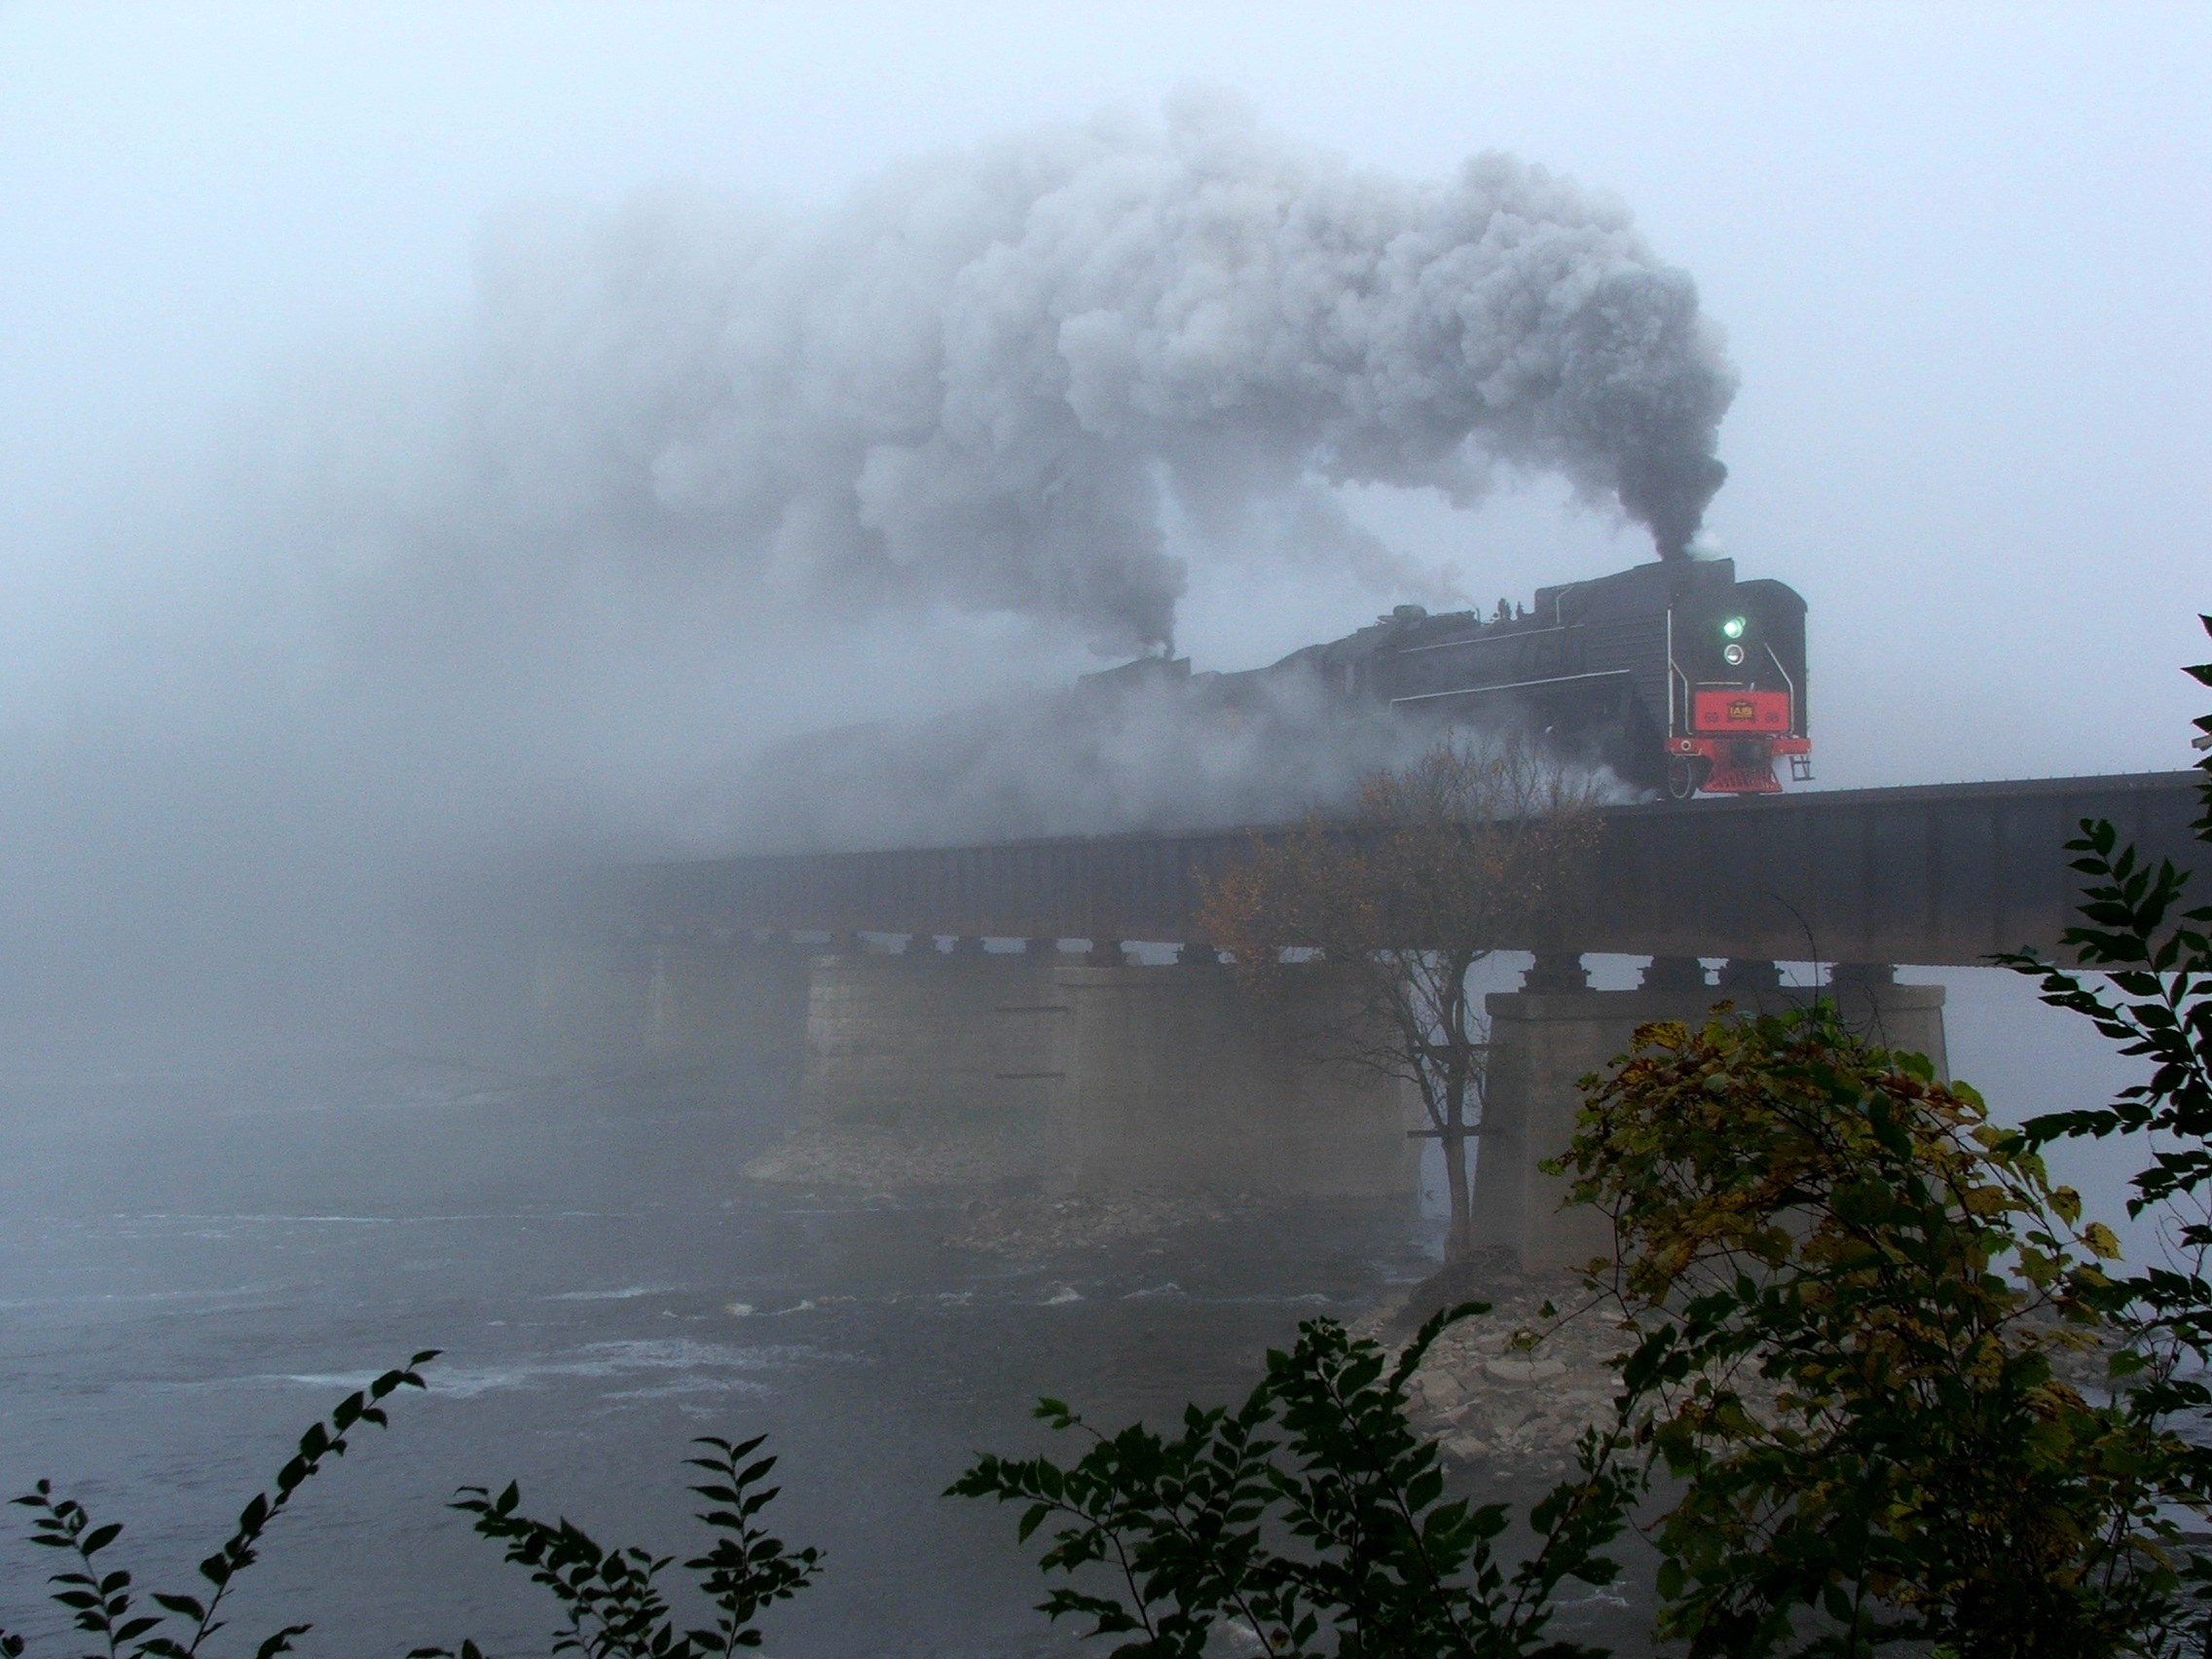 The two steamers emerge from the dense fog and into Moscow as they chug across the Cedar River.